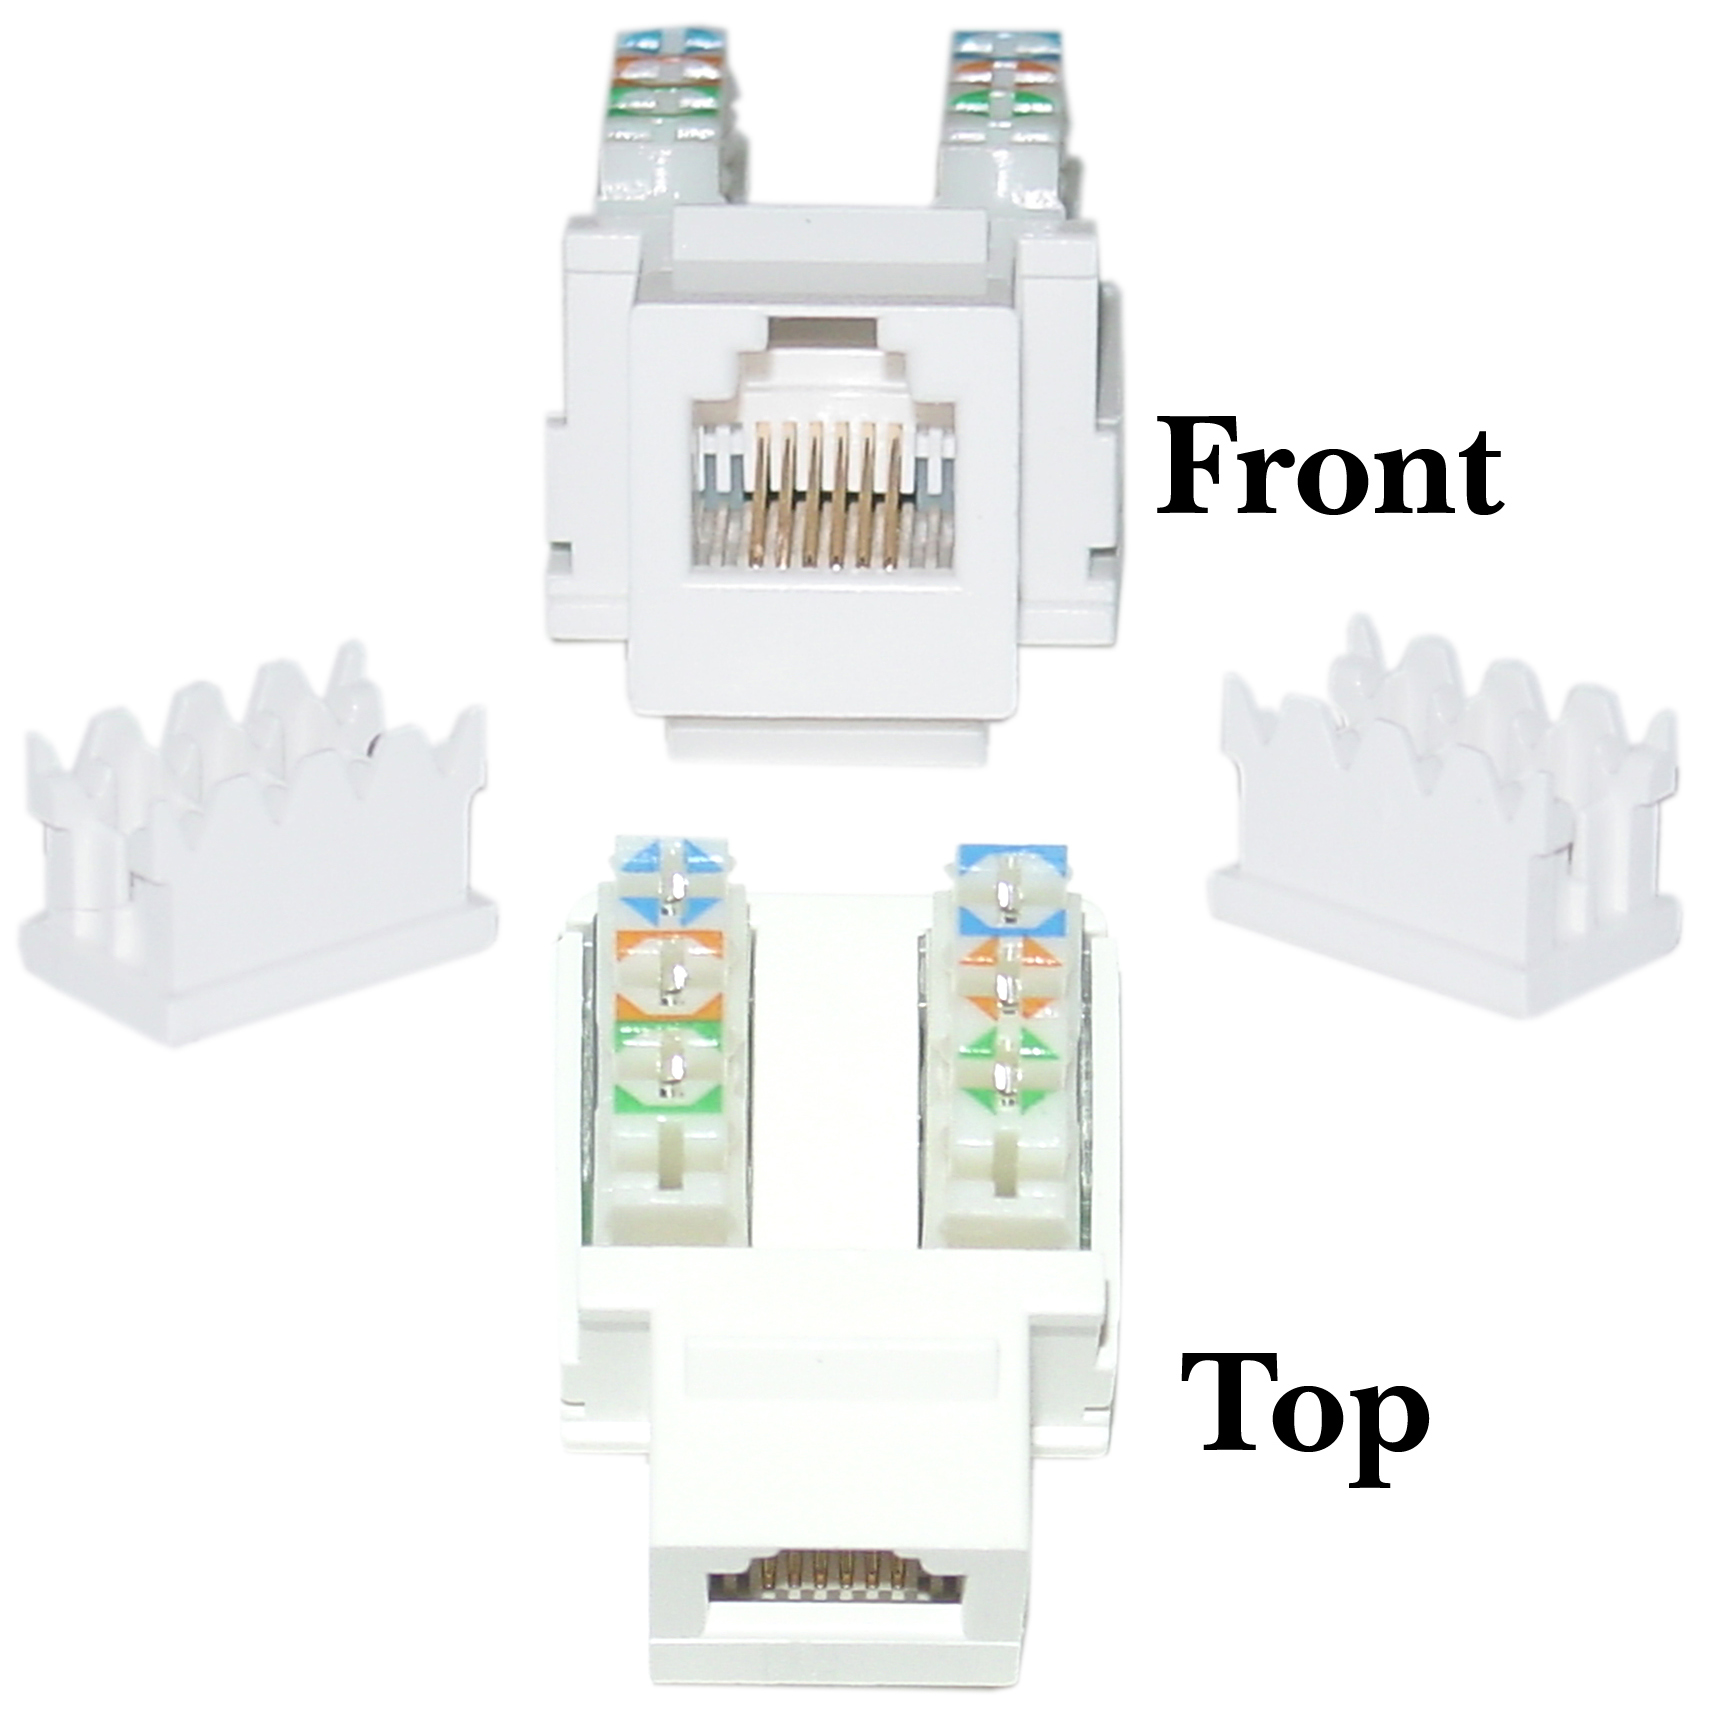 Rj11 Punch Down Diagram Simple Electrical Wiring Jack Together With Rj45 To Phone Data Keystone Rj12 Female 110 Telephone